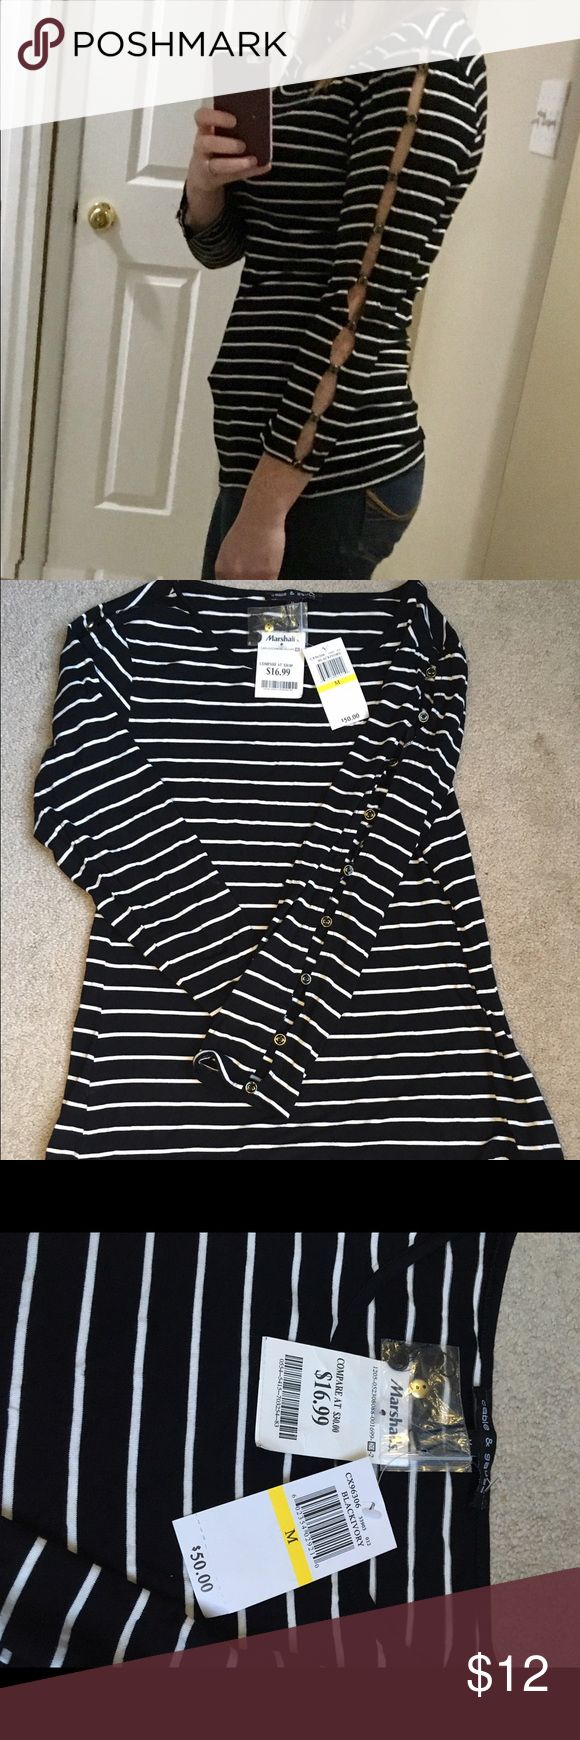 Brand new Marshalls striped top Brand new with tags black and white striped Marshalls top with slit sleeves. Material 97% Viscose 3% Spandex marshalls Tops Tees - Long Sleeve